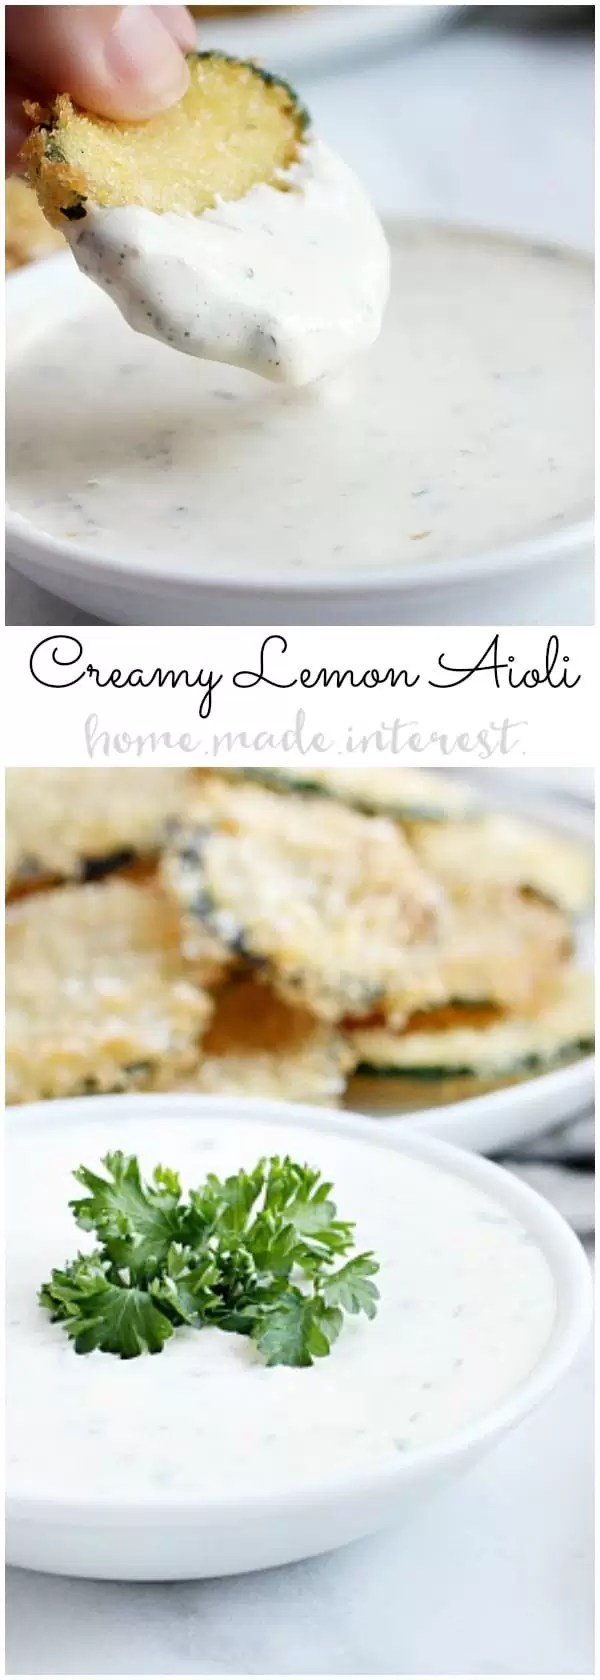 Easy Lemon Aioli Home Made Interest